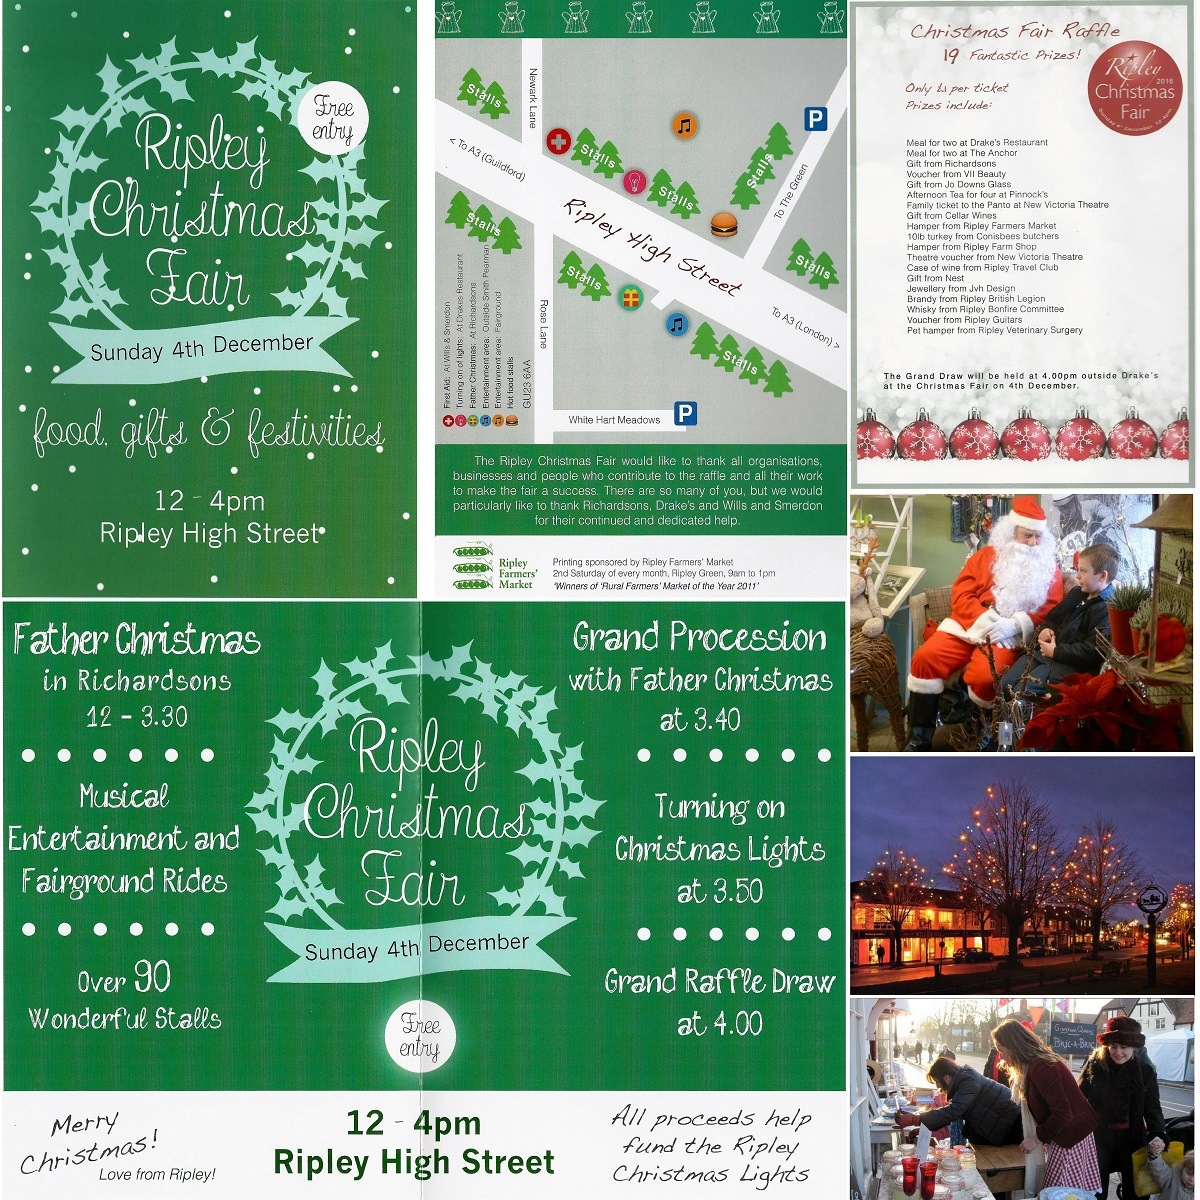 Ripley Christmas Fair - 4th Dec, noon to 4pm